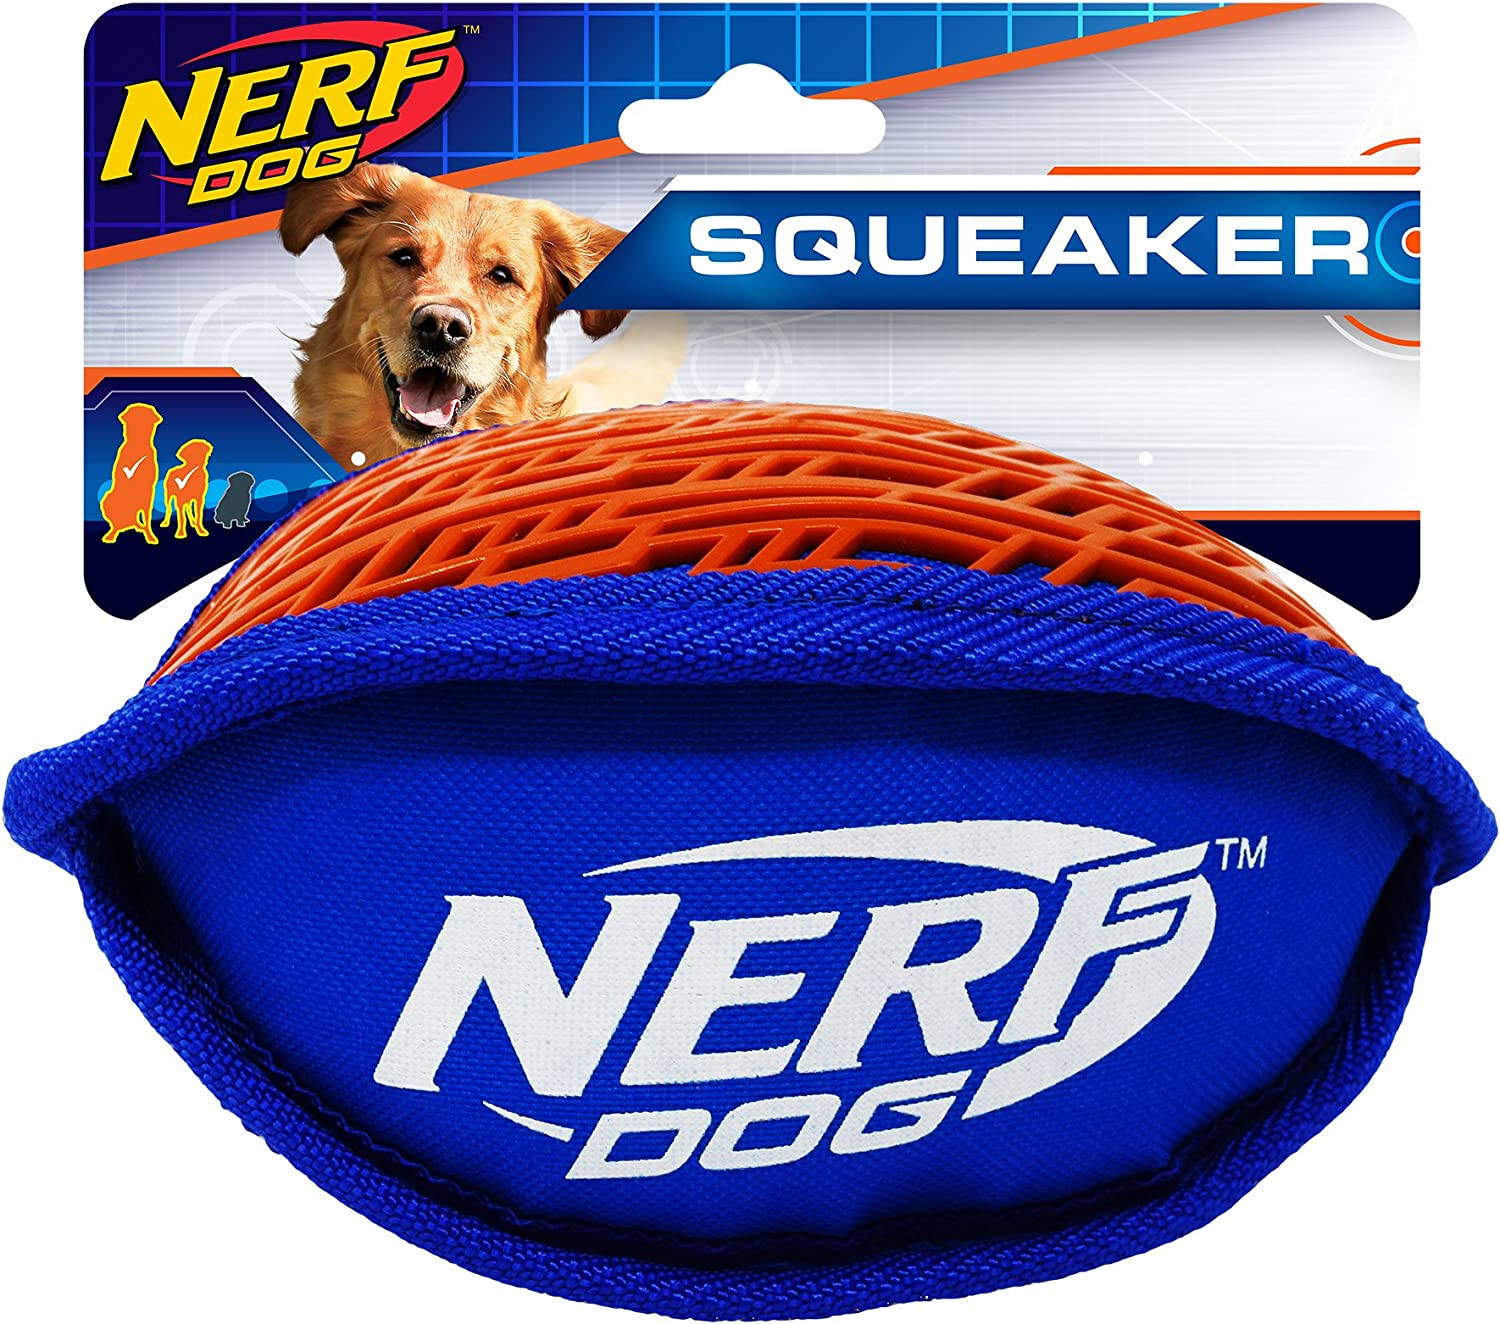 Nerf Dog Force Grip Football Dog Toy with Interactive Squeak, Lightweight, Durable and Water Resistant, 7 Inch Diameter for Medium/Large Breeds, Single Unit, Blue/Orange